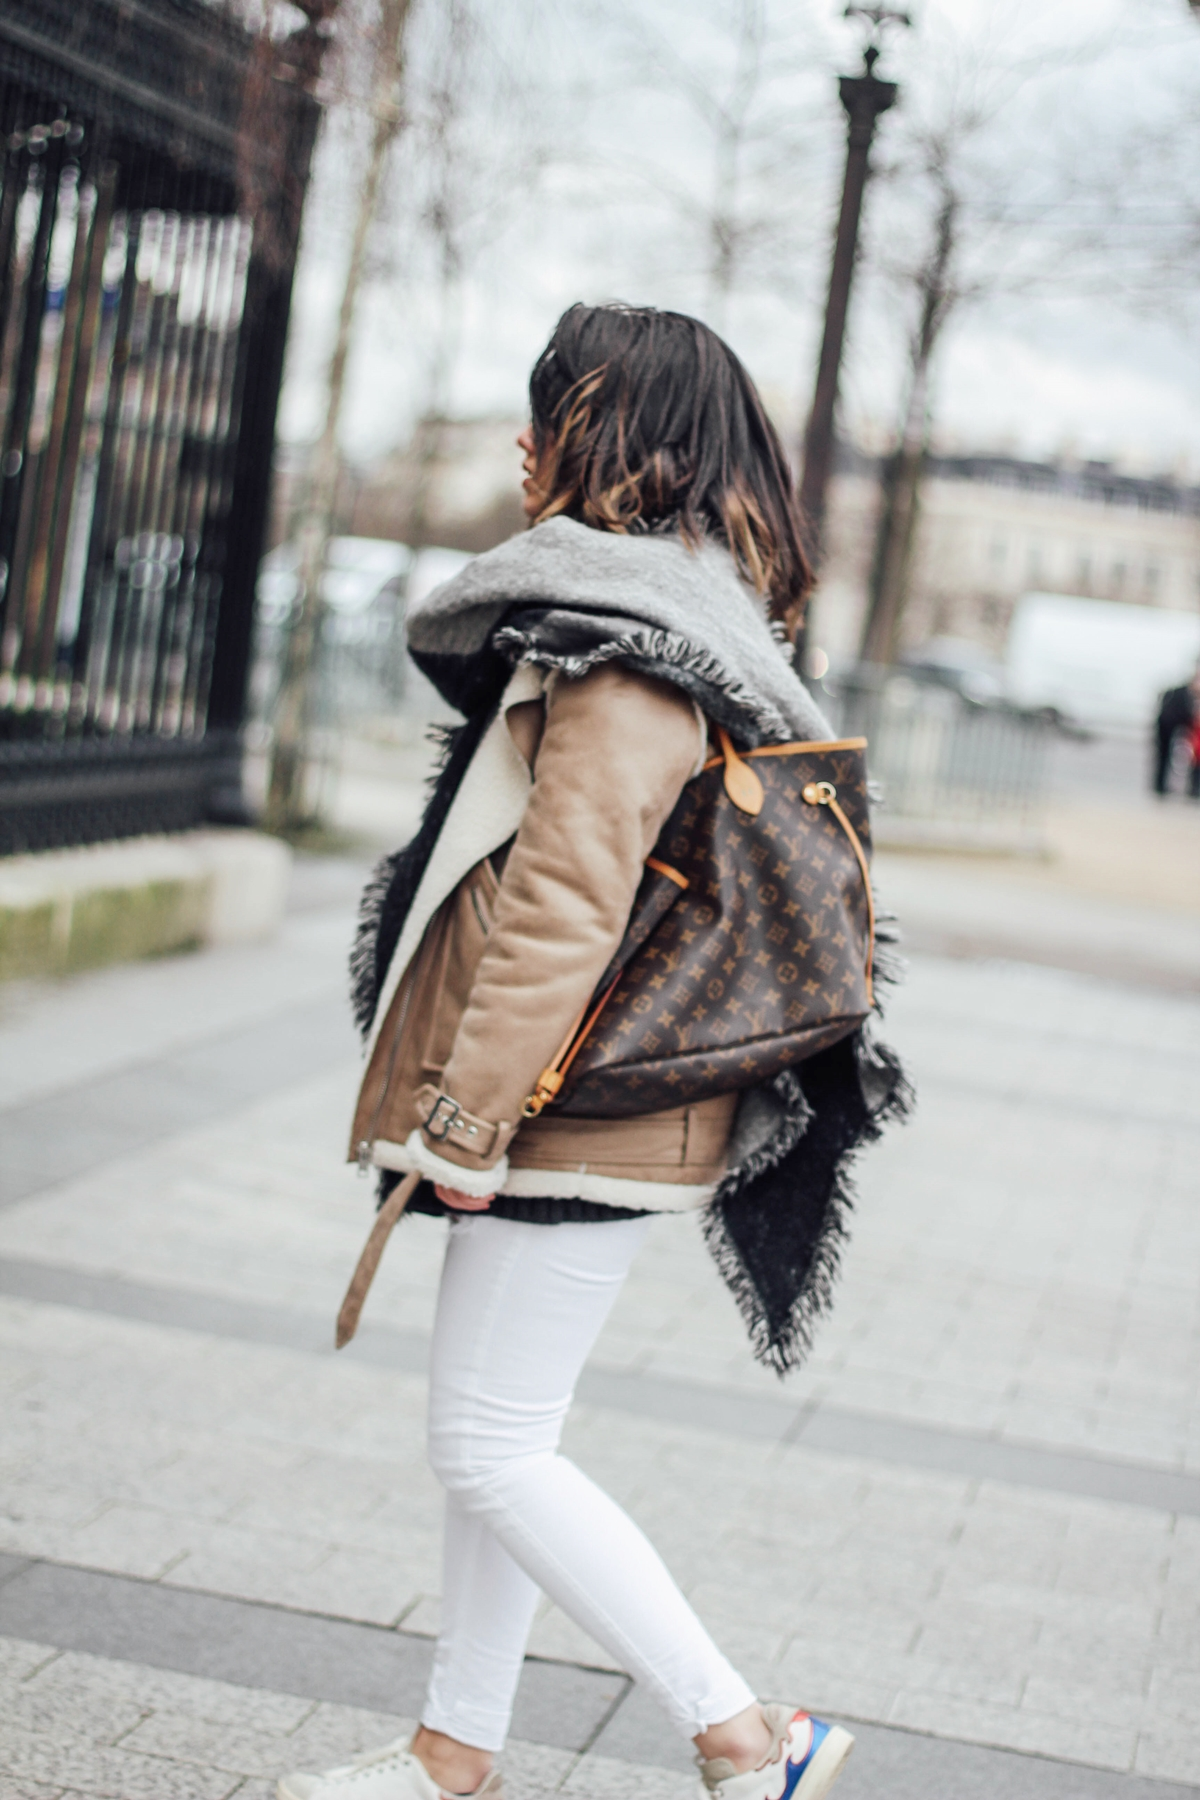 shearling-jacket-beige-isabel-marant-sneakers-streetstyle louis vuitton neverful